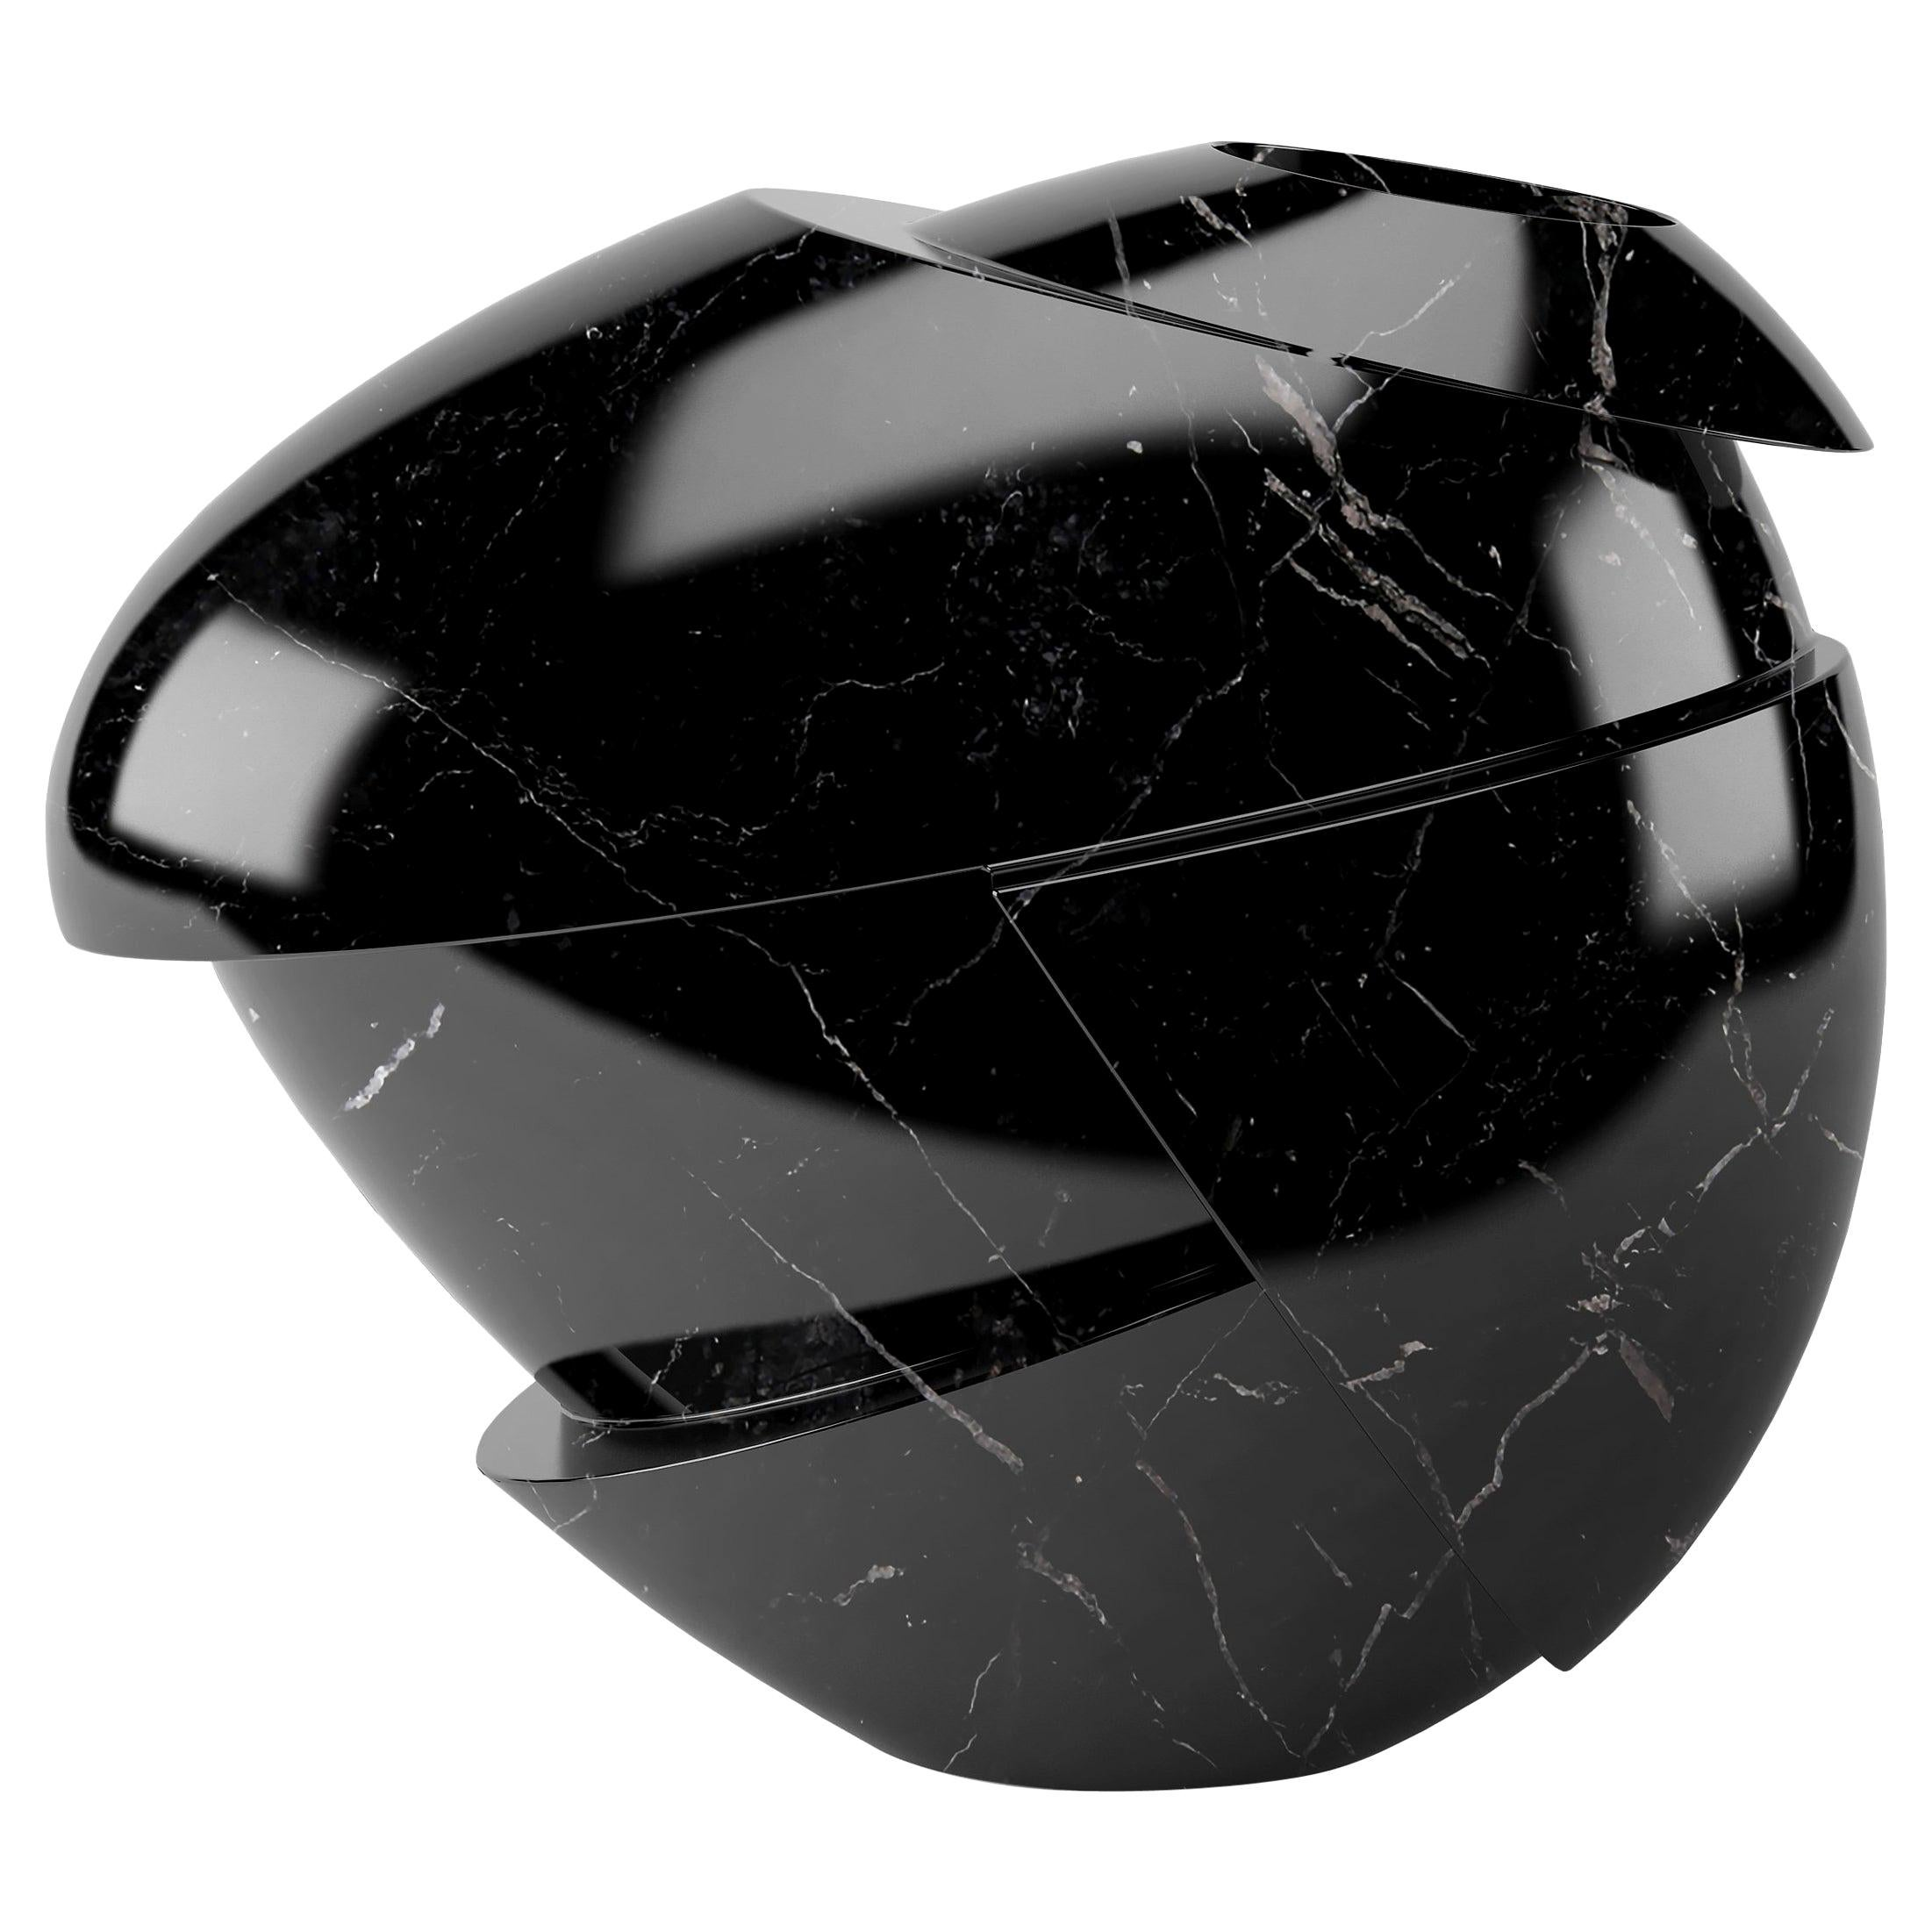 Vase Sculpture Black Marquina Marble Contemporary Italian Design